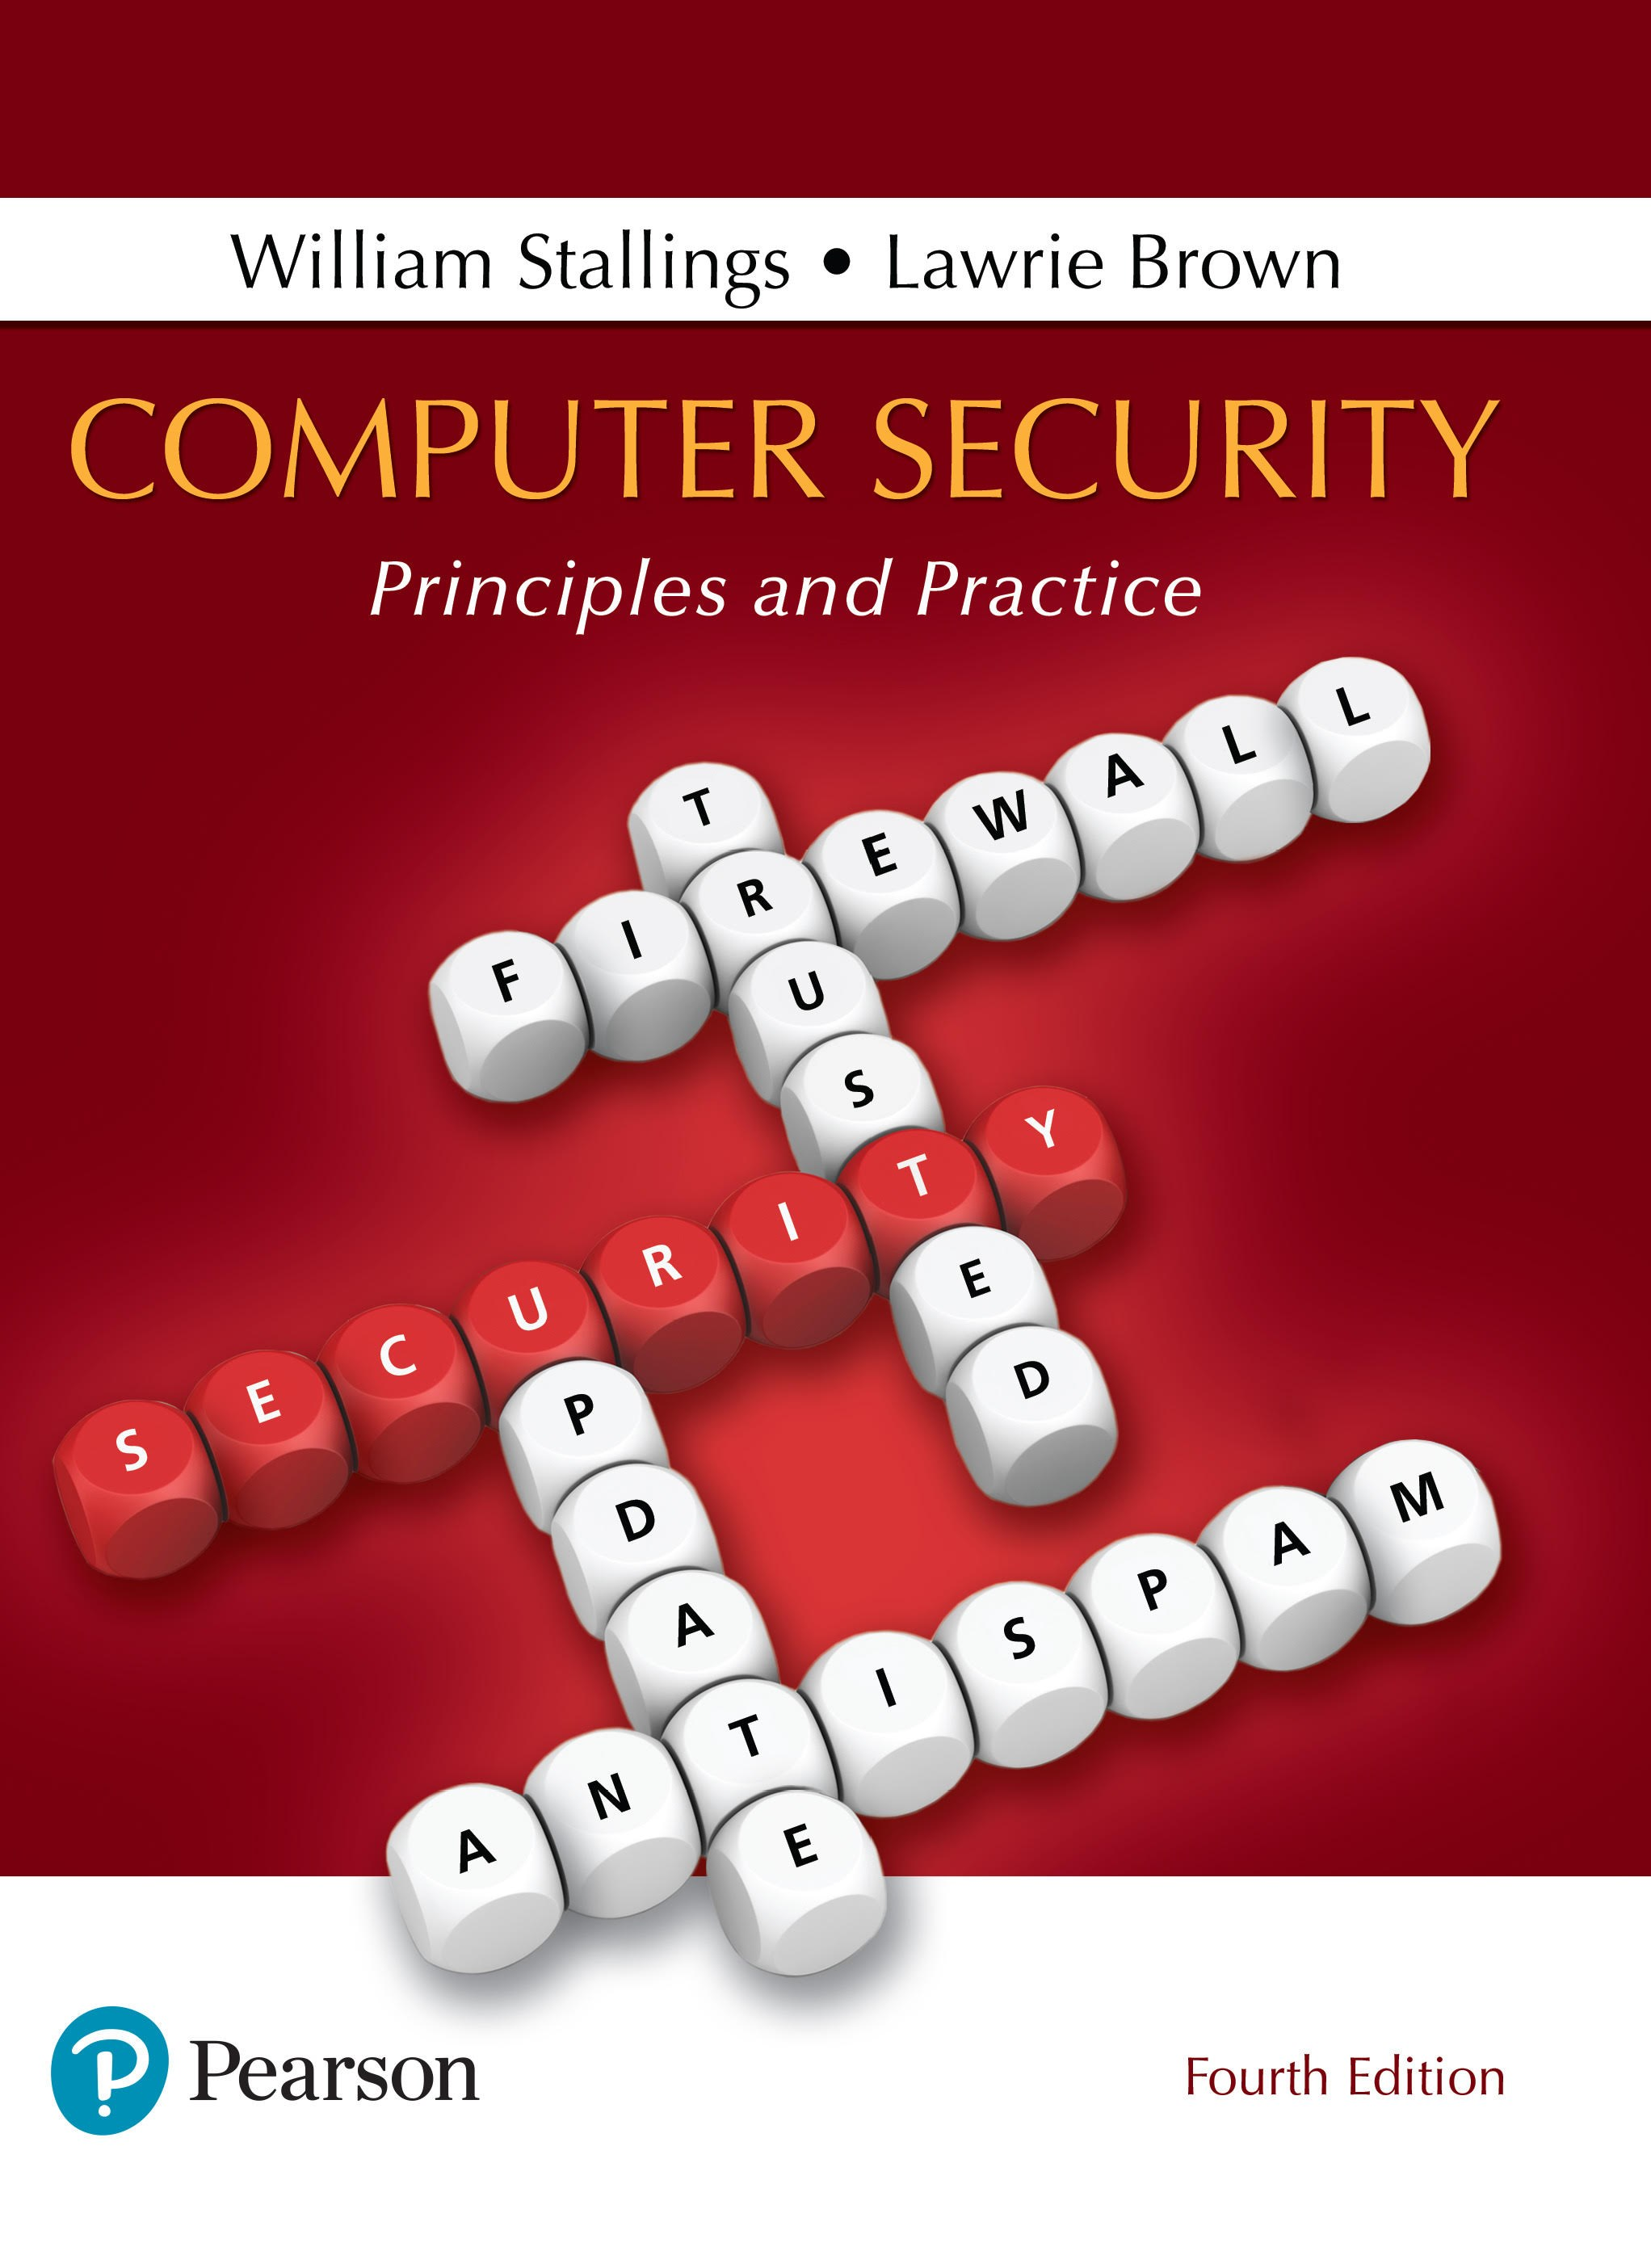 Computer Security: Principles and Practice, 4th Edition